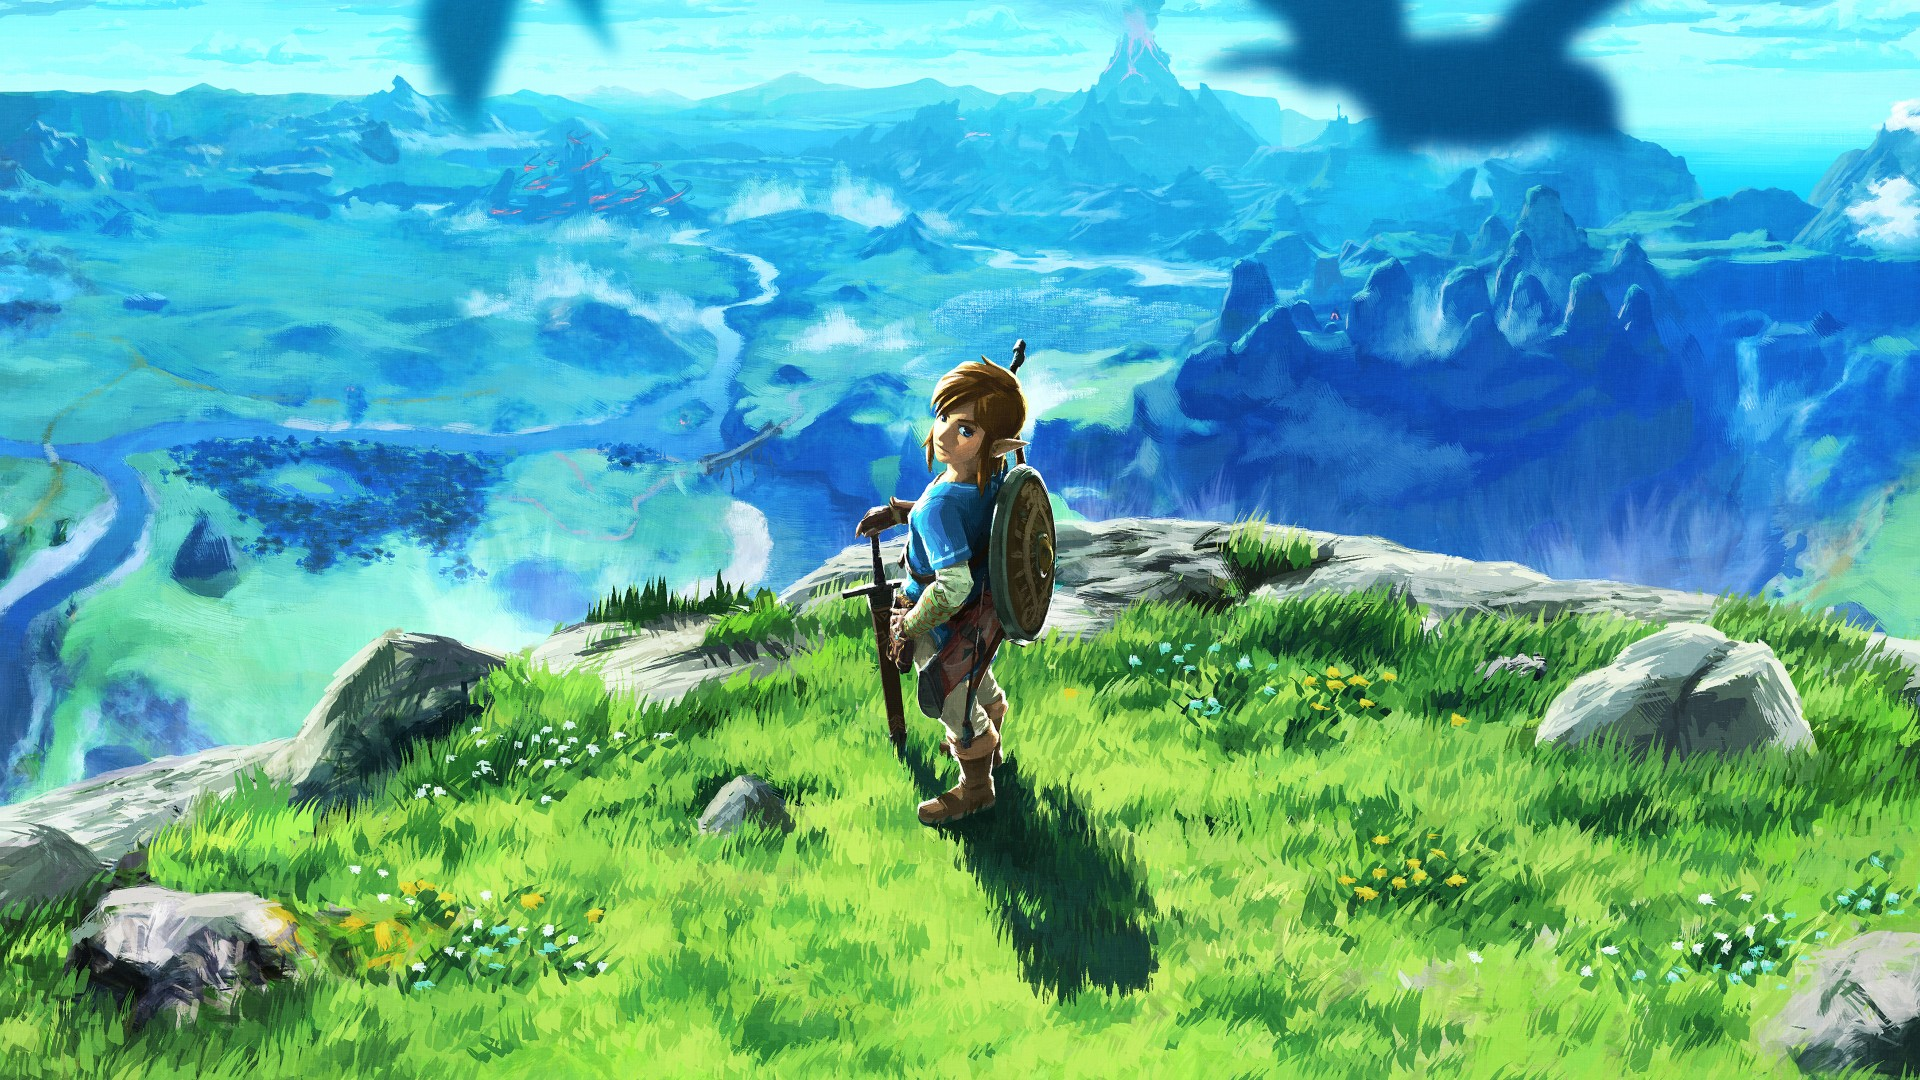 Wallpaper High Definition Cute Animals The Legend Of Zelda Breath Of The Wild 4k 2017 Wallpapers